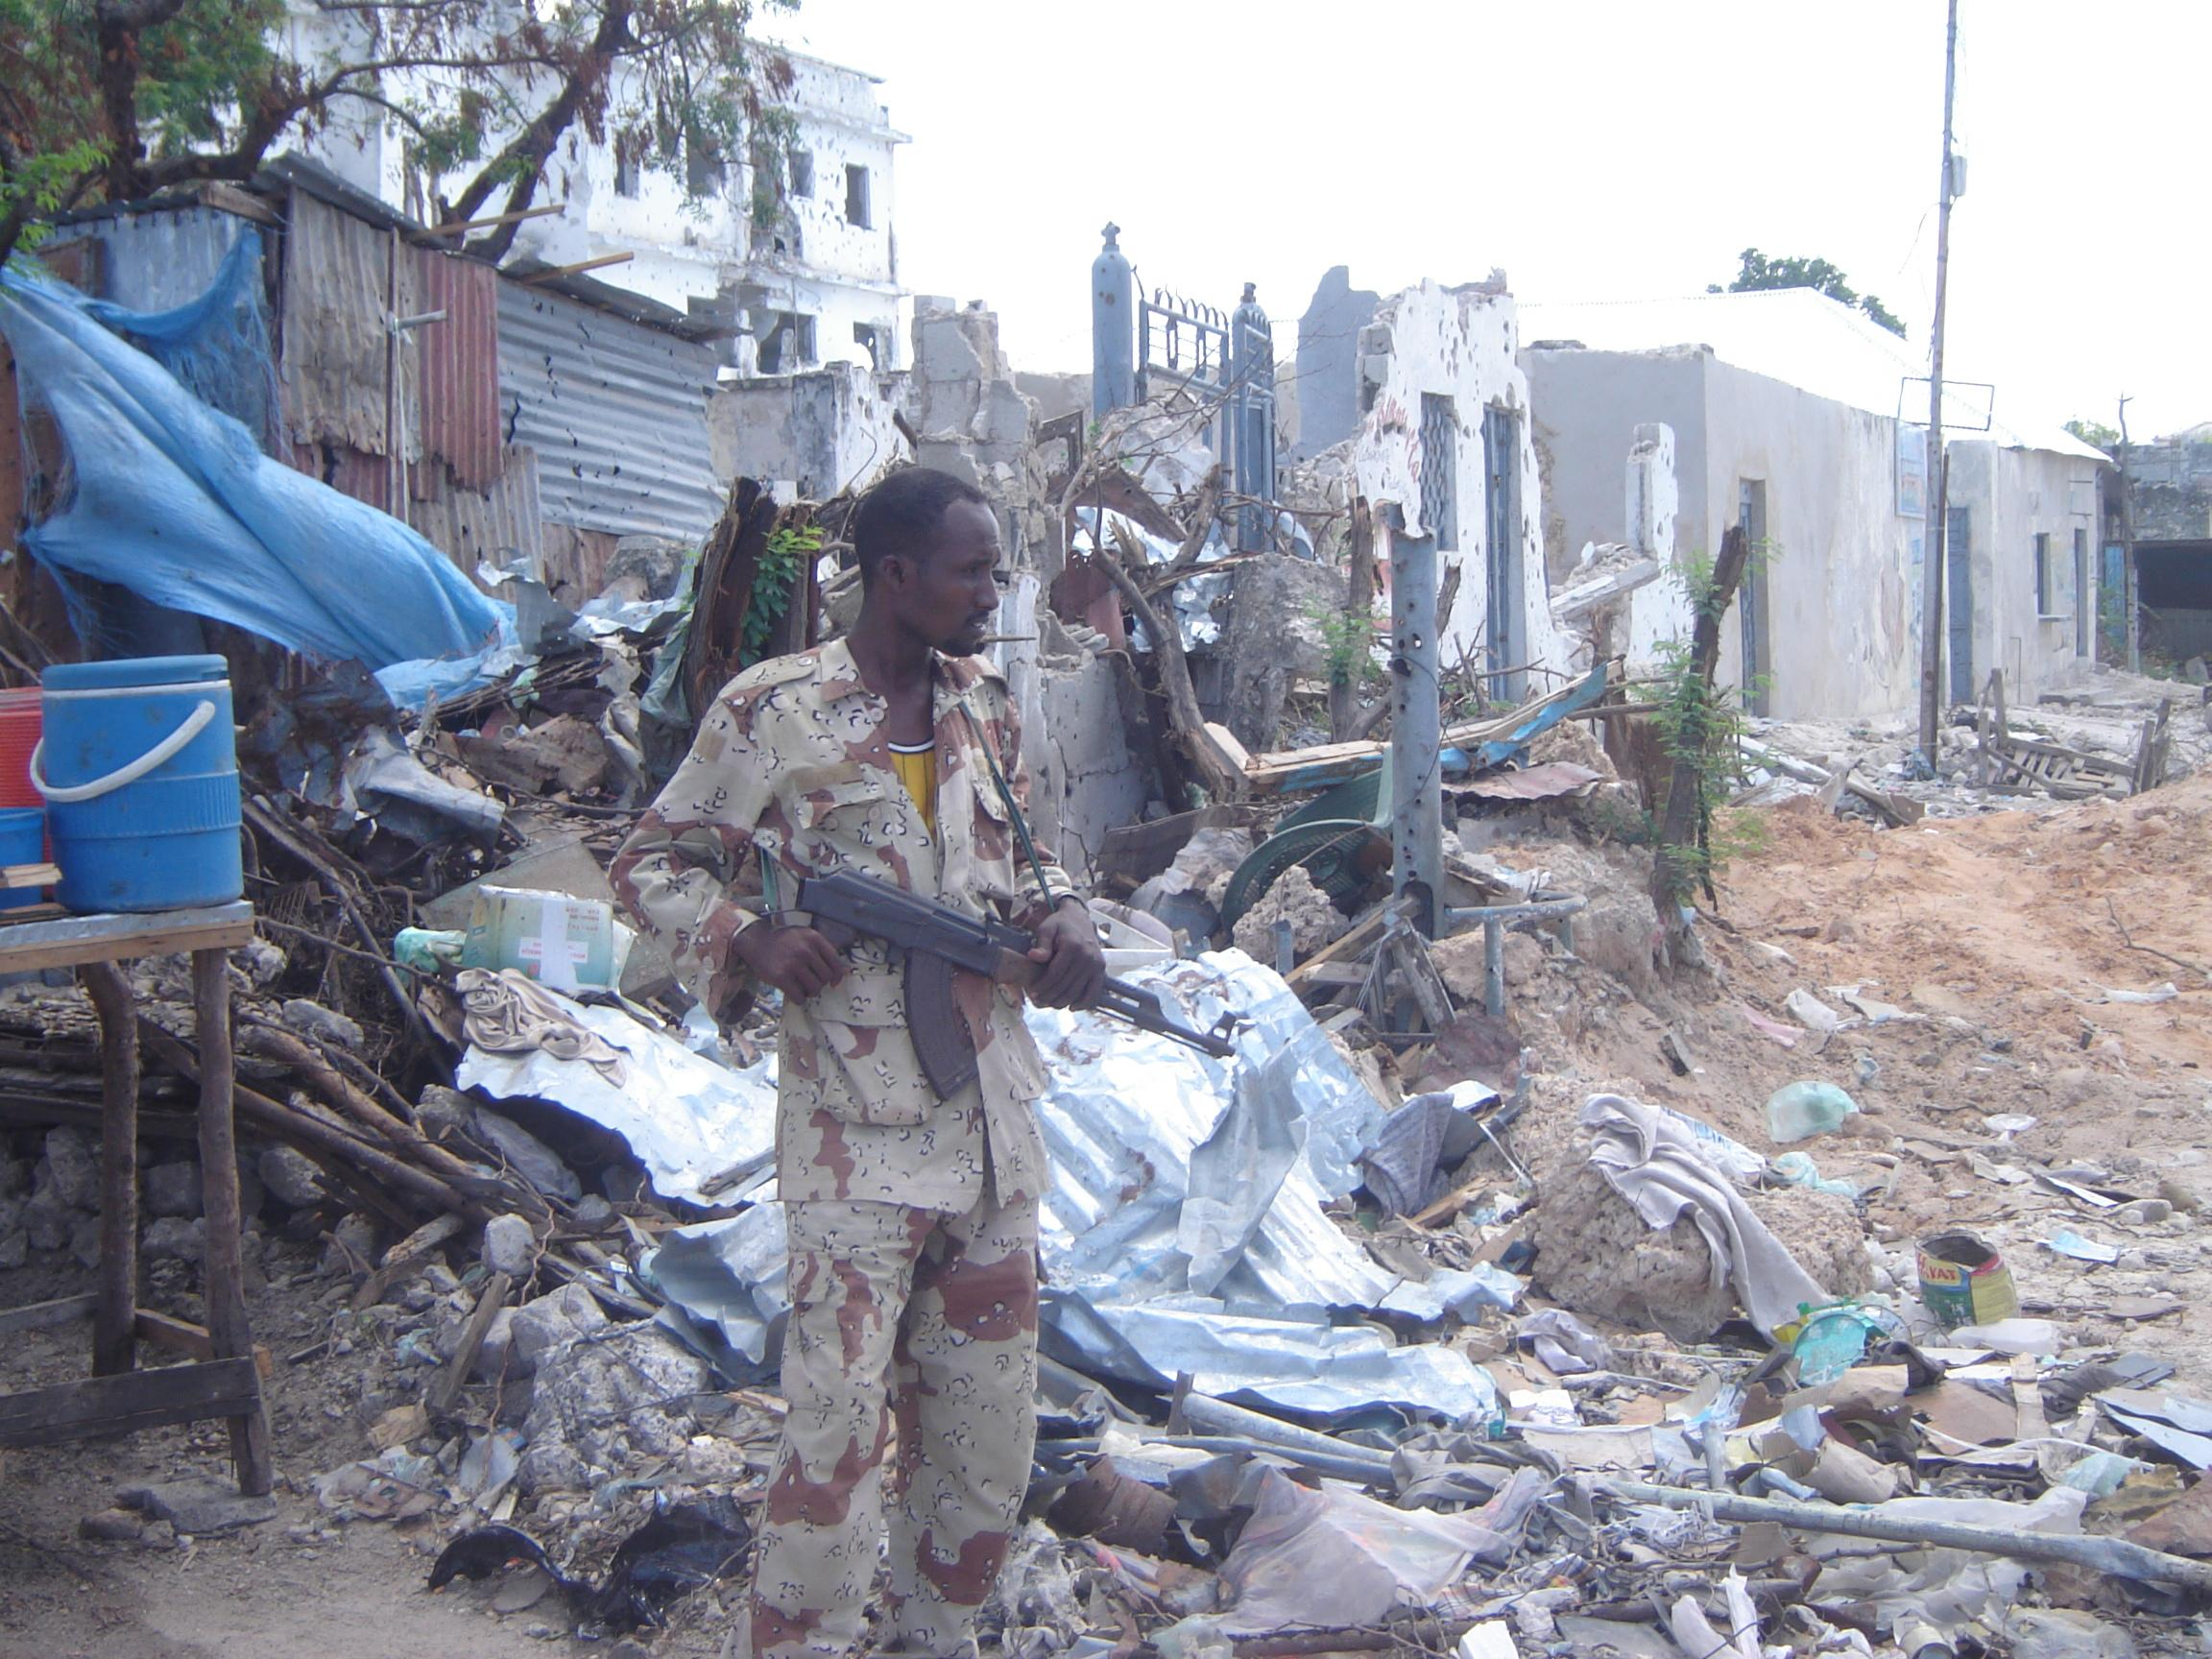 A Somali soldier near a building  destroyed in recent fighting between the government and insurgents, Mogadishu, Somalia, 22 May 2007. Most  displaced people cannot return home because their houses have been destroyed by mortar shelling, or because they c